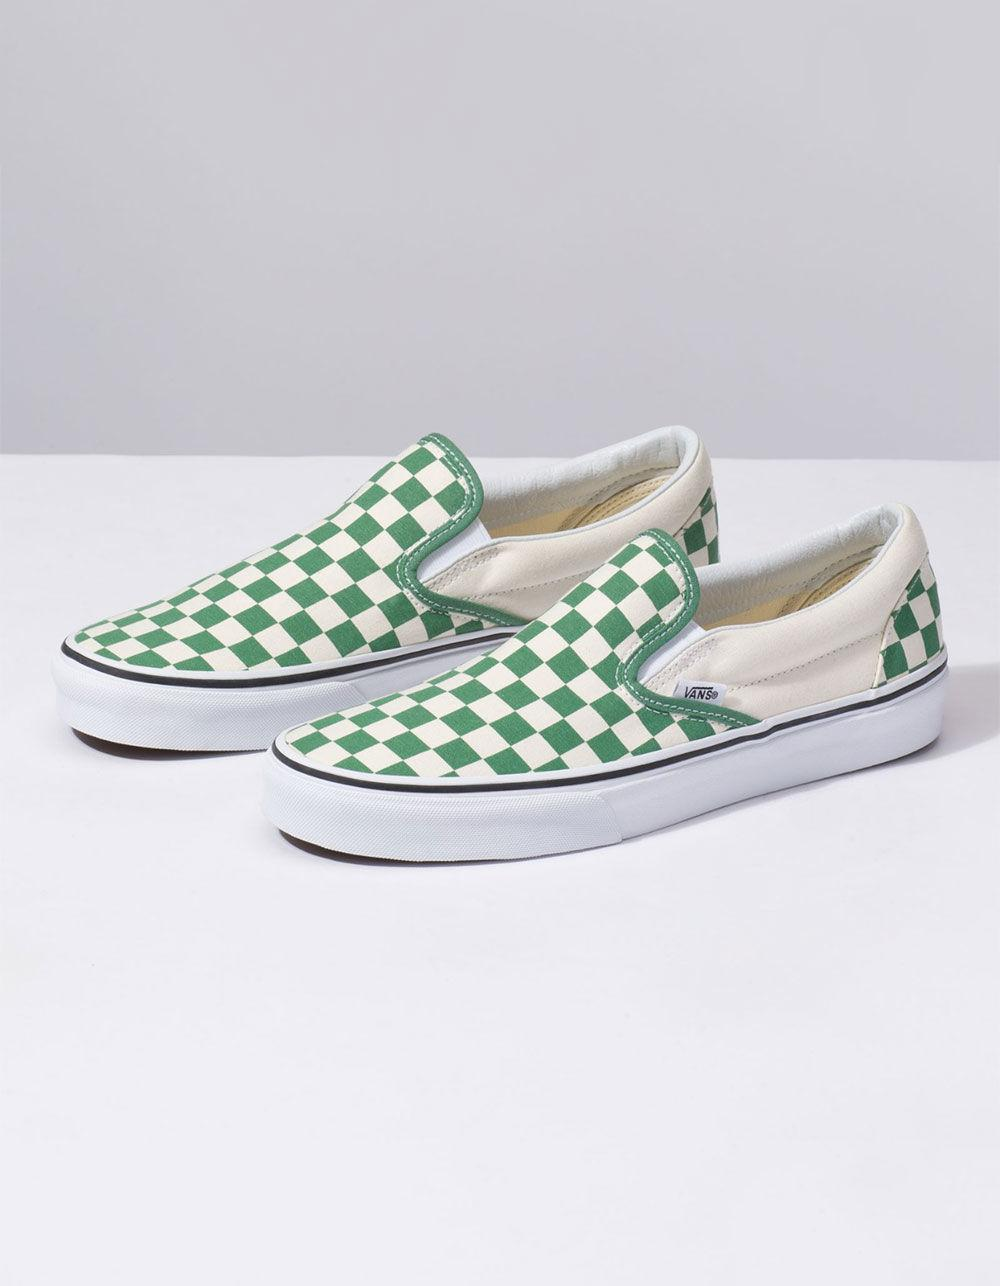 5368c2f835314d Lyst - Vans Classic Slip-on Deep Grass Green Shoes in Green for Men ...